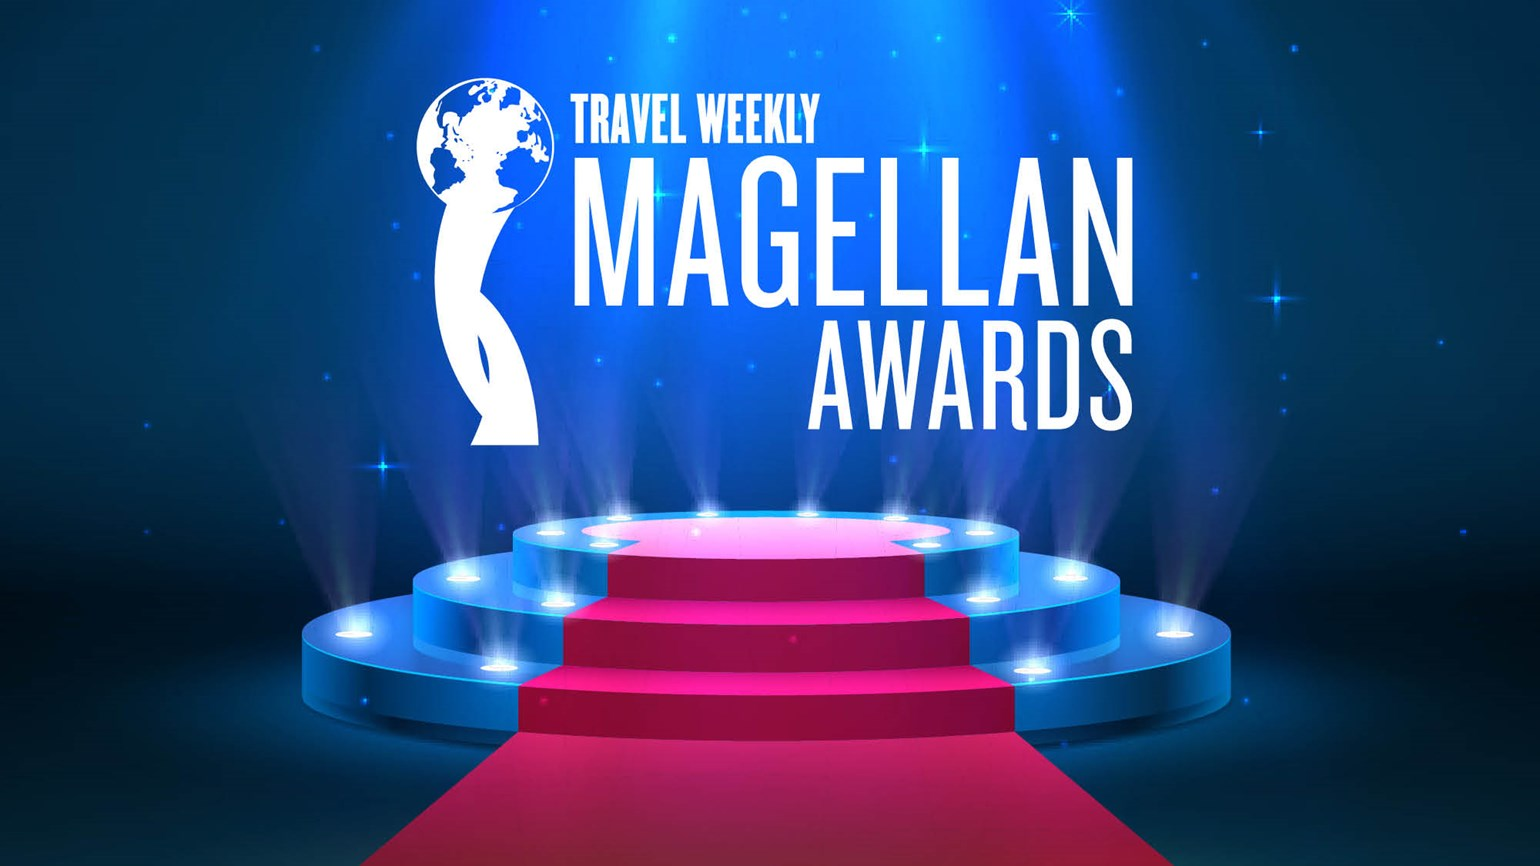 Travel Weekly Magellan Awards add new categories to reflect unusual year